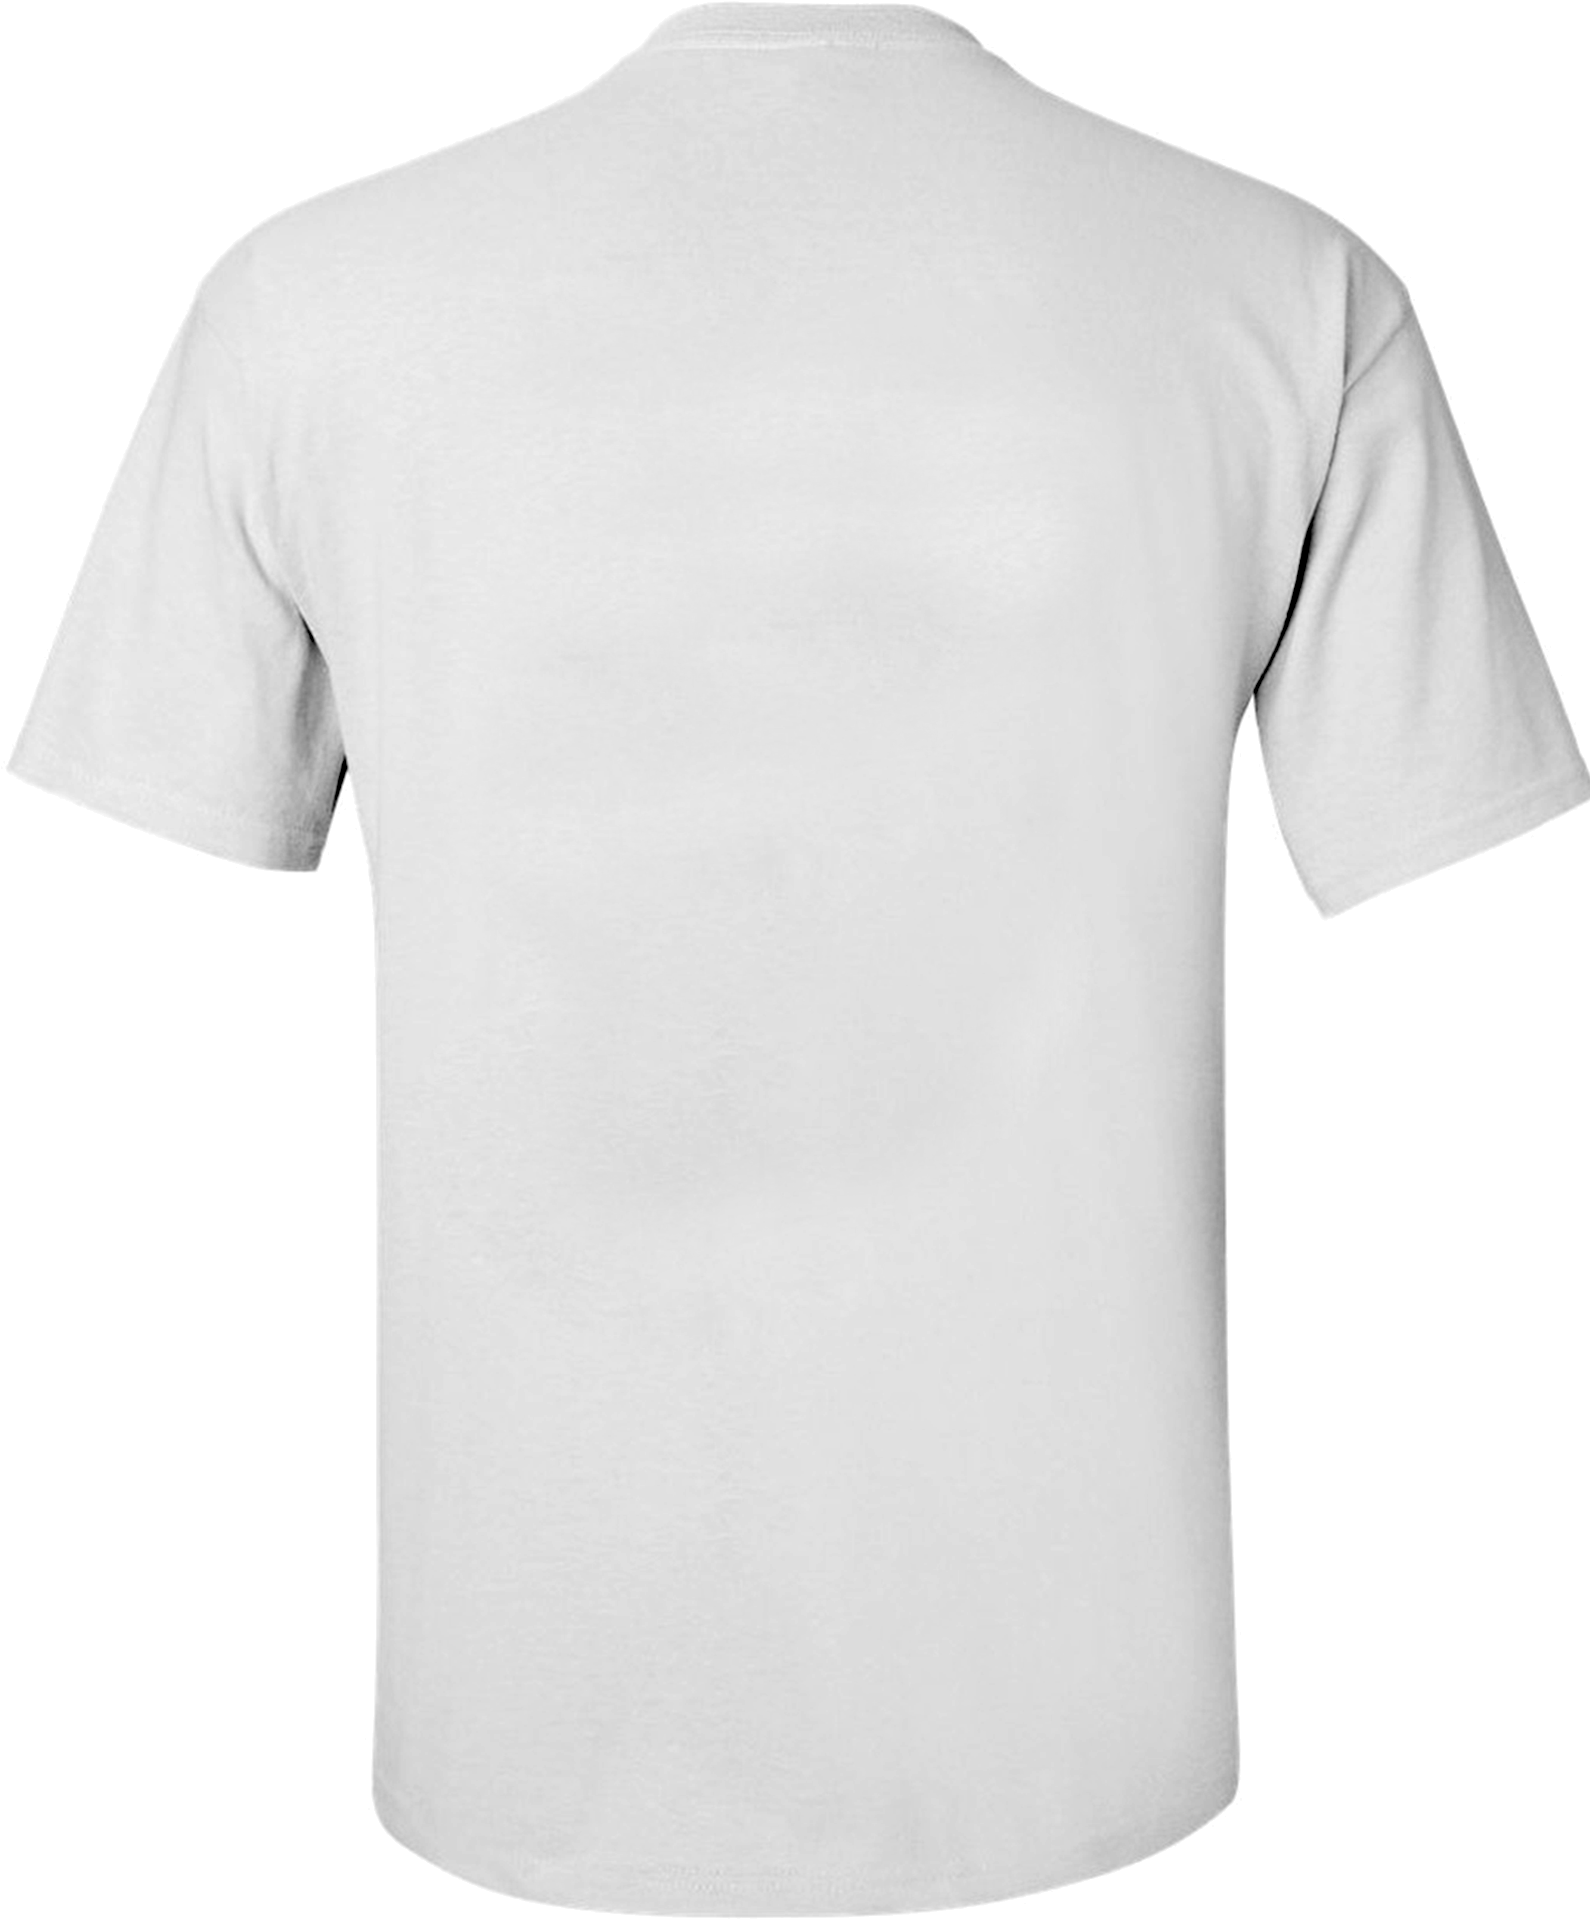 White T Shirt Front And Back Png - White Tshirt Back Png (1680x2035), Png Download